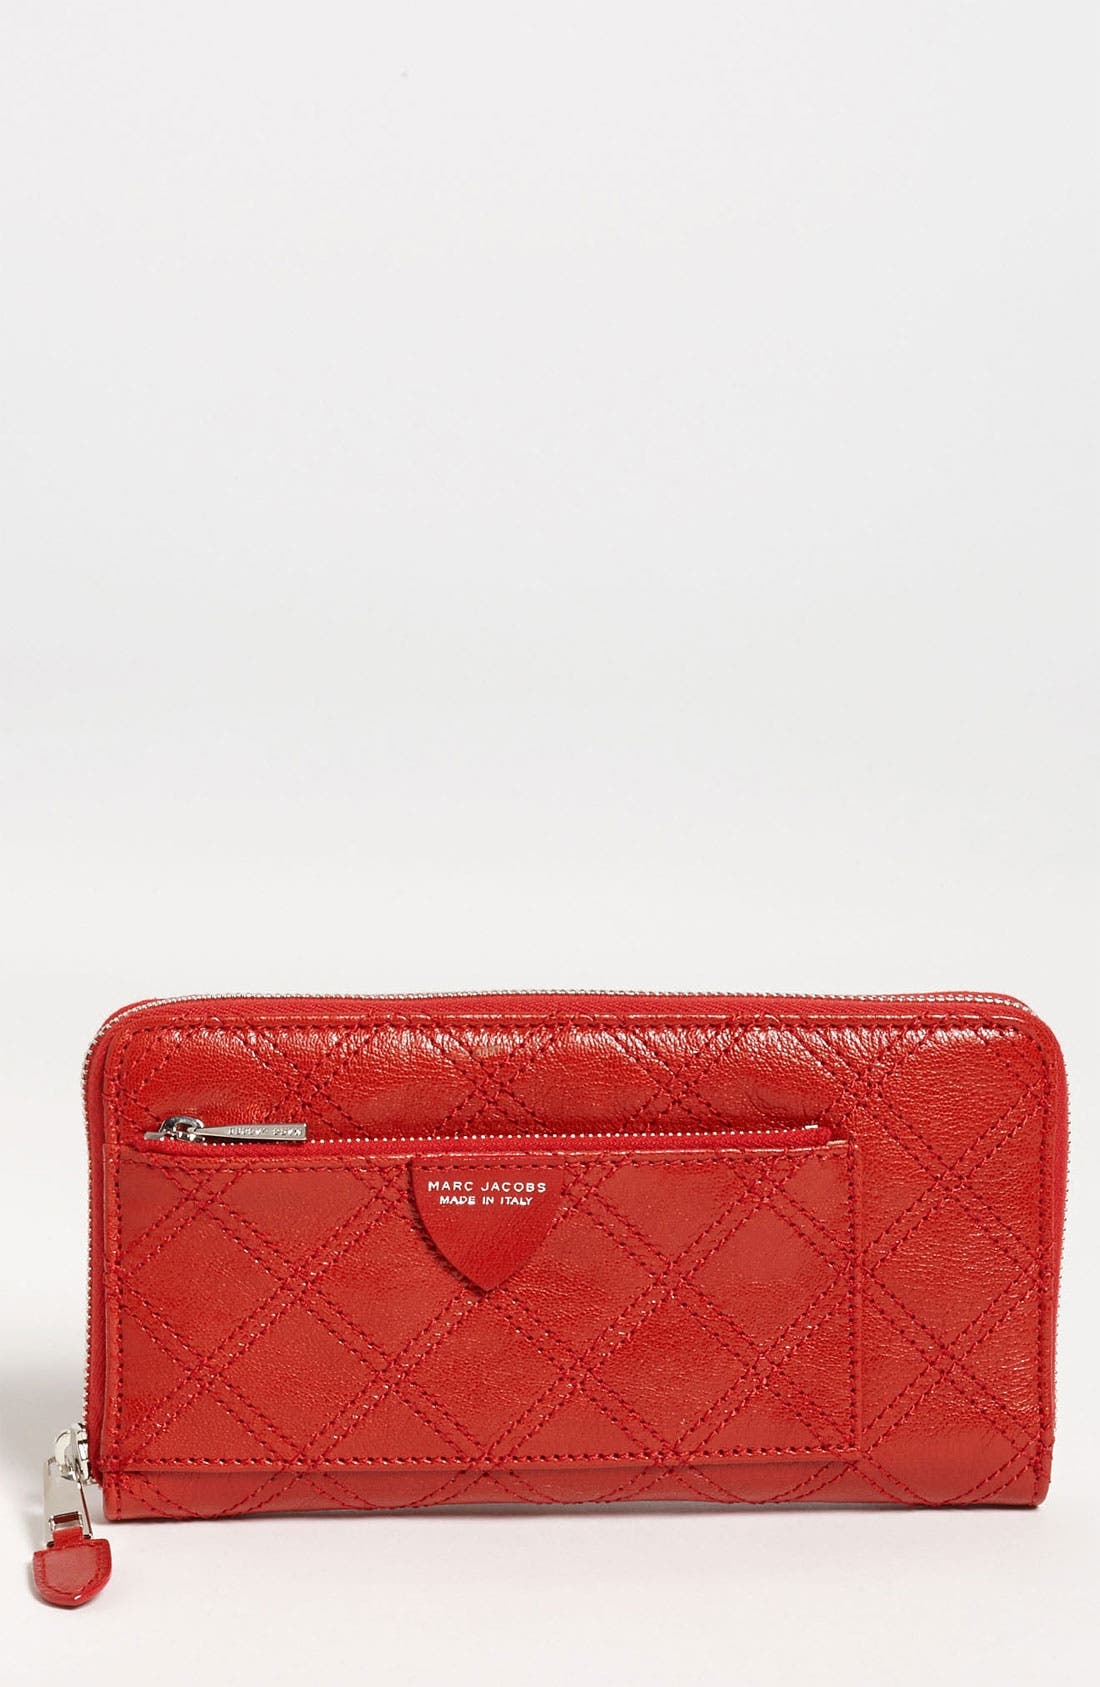 Main Image - MARC JACOBS 'Sister' Leather Wallet